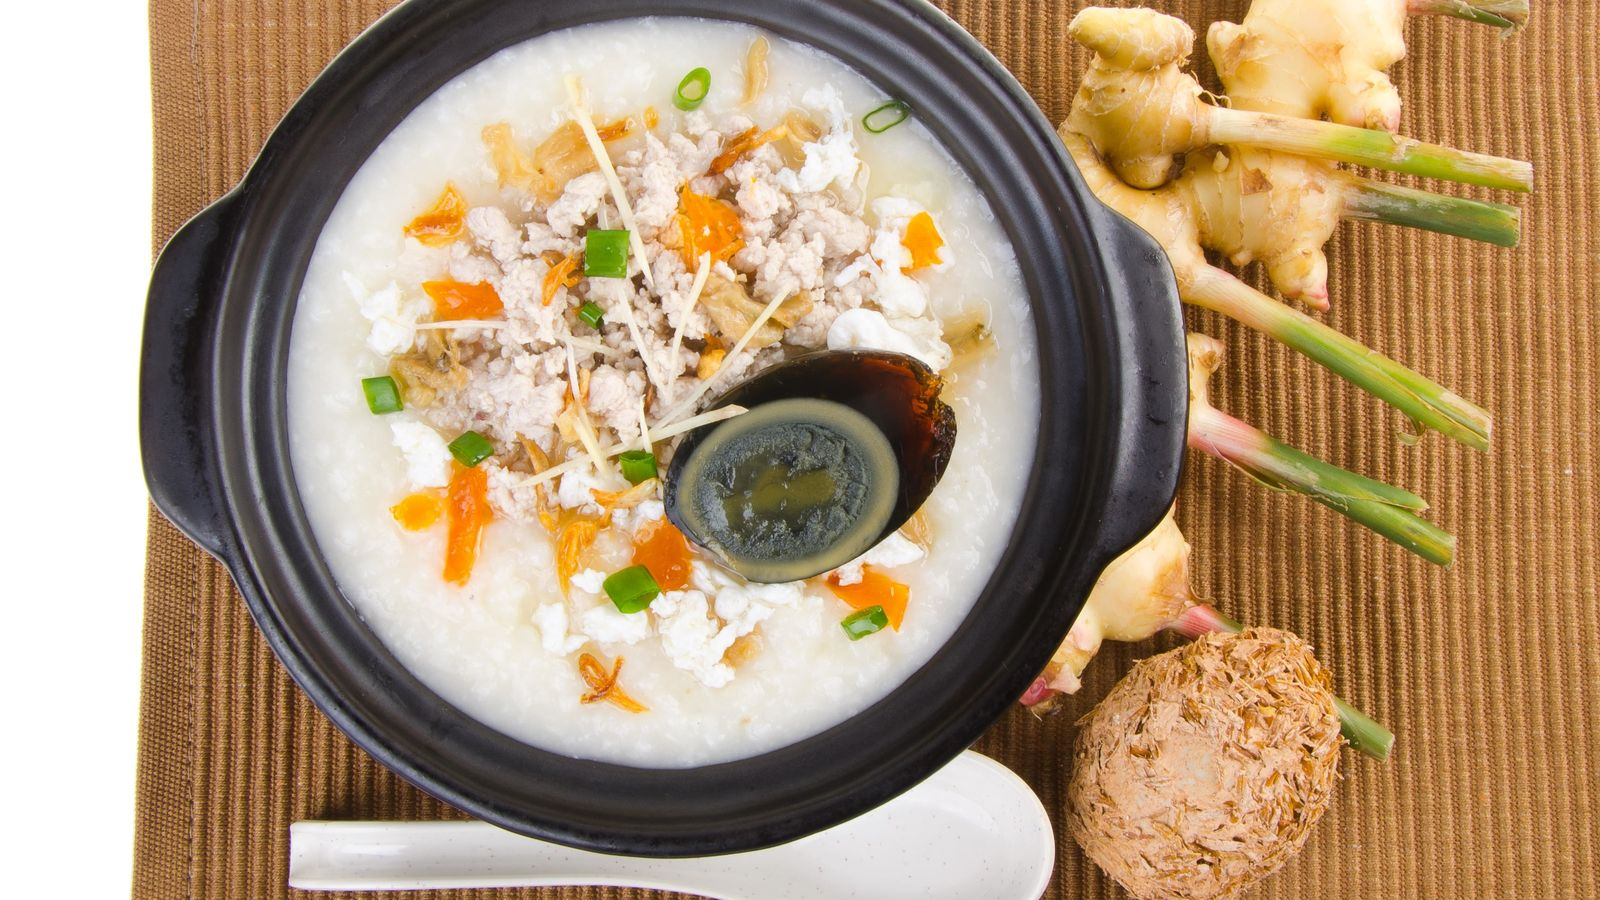 See anything you like? A congee (porridge) made with pork, vegetables – and a 'century egg'. A common ...